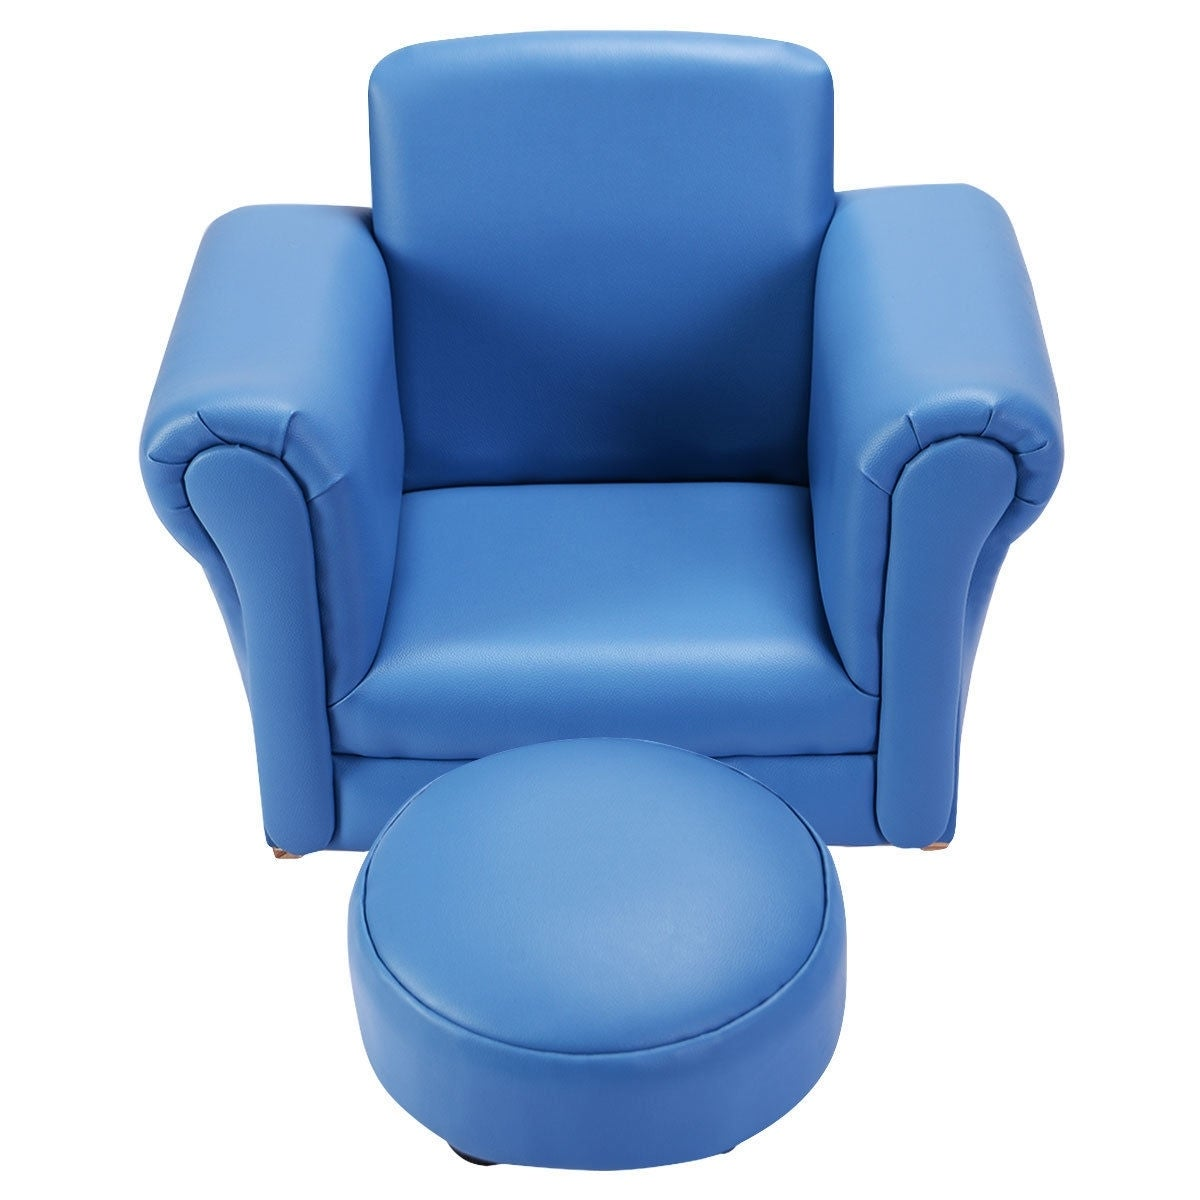 Playrooms Blue Classrooms SPG-1528-BL Sprogs Toddler Comfort Sofa for Bedrooms